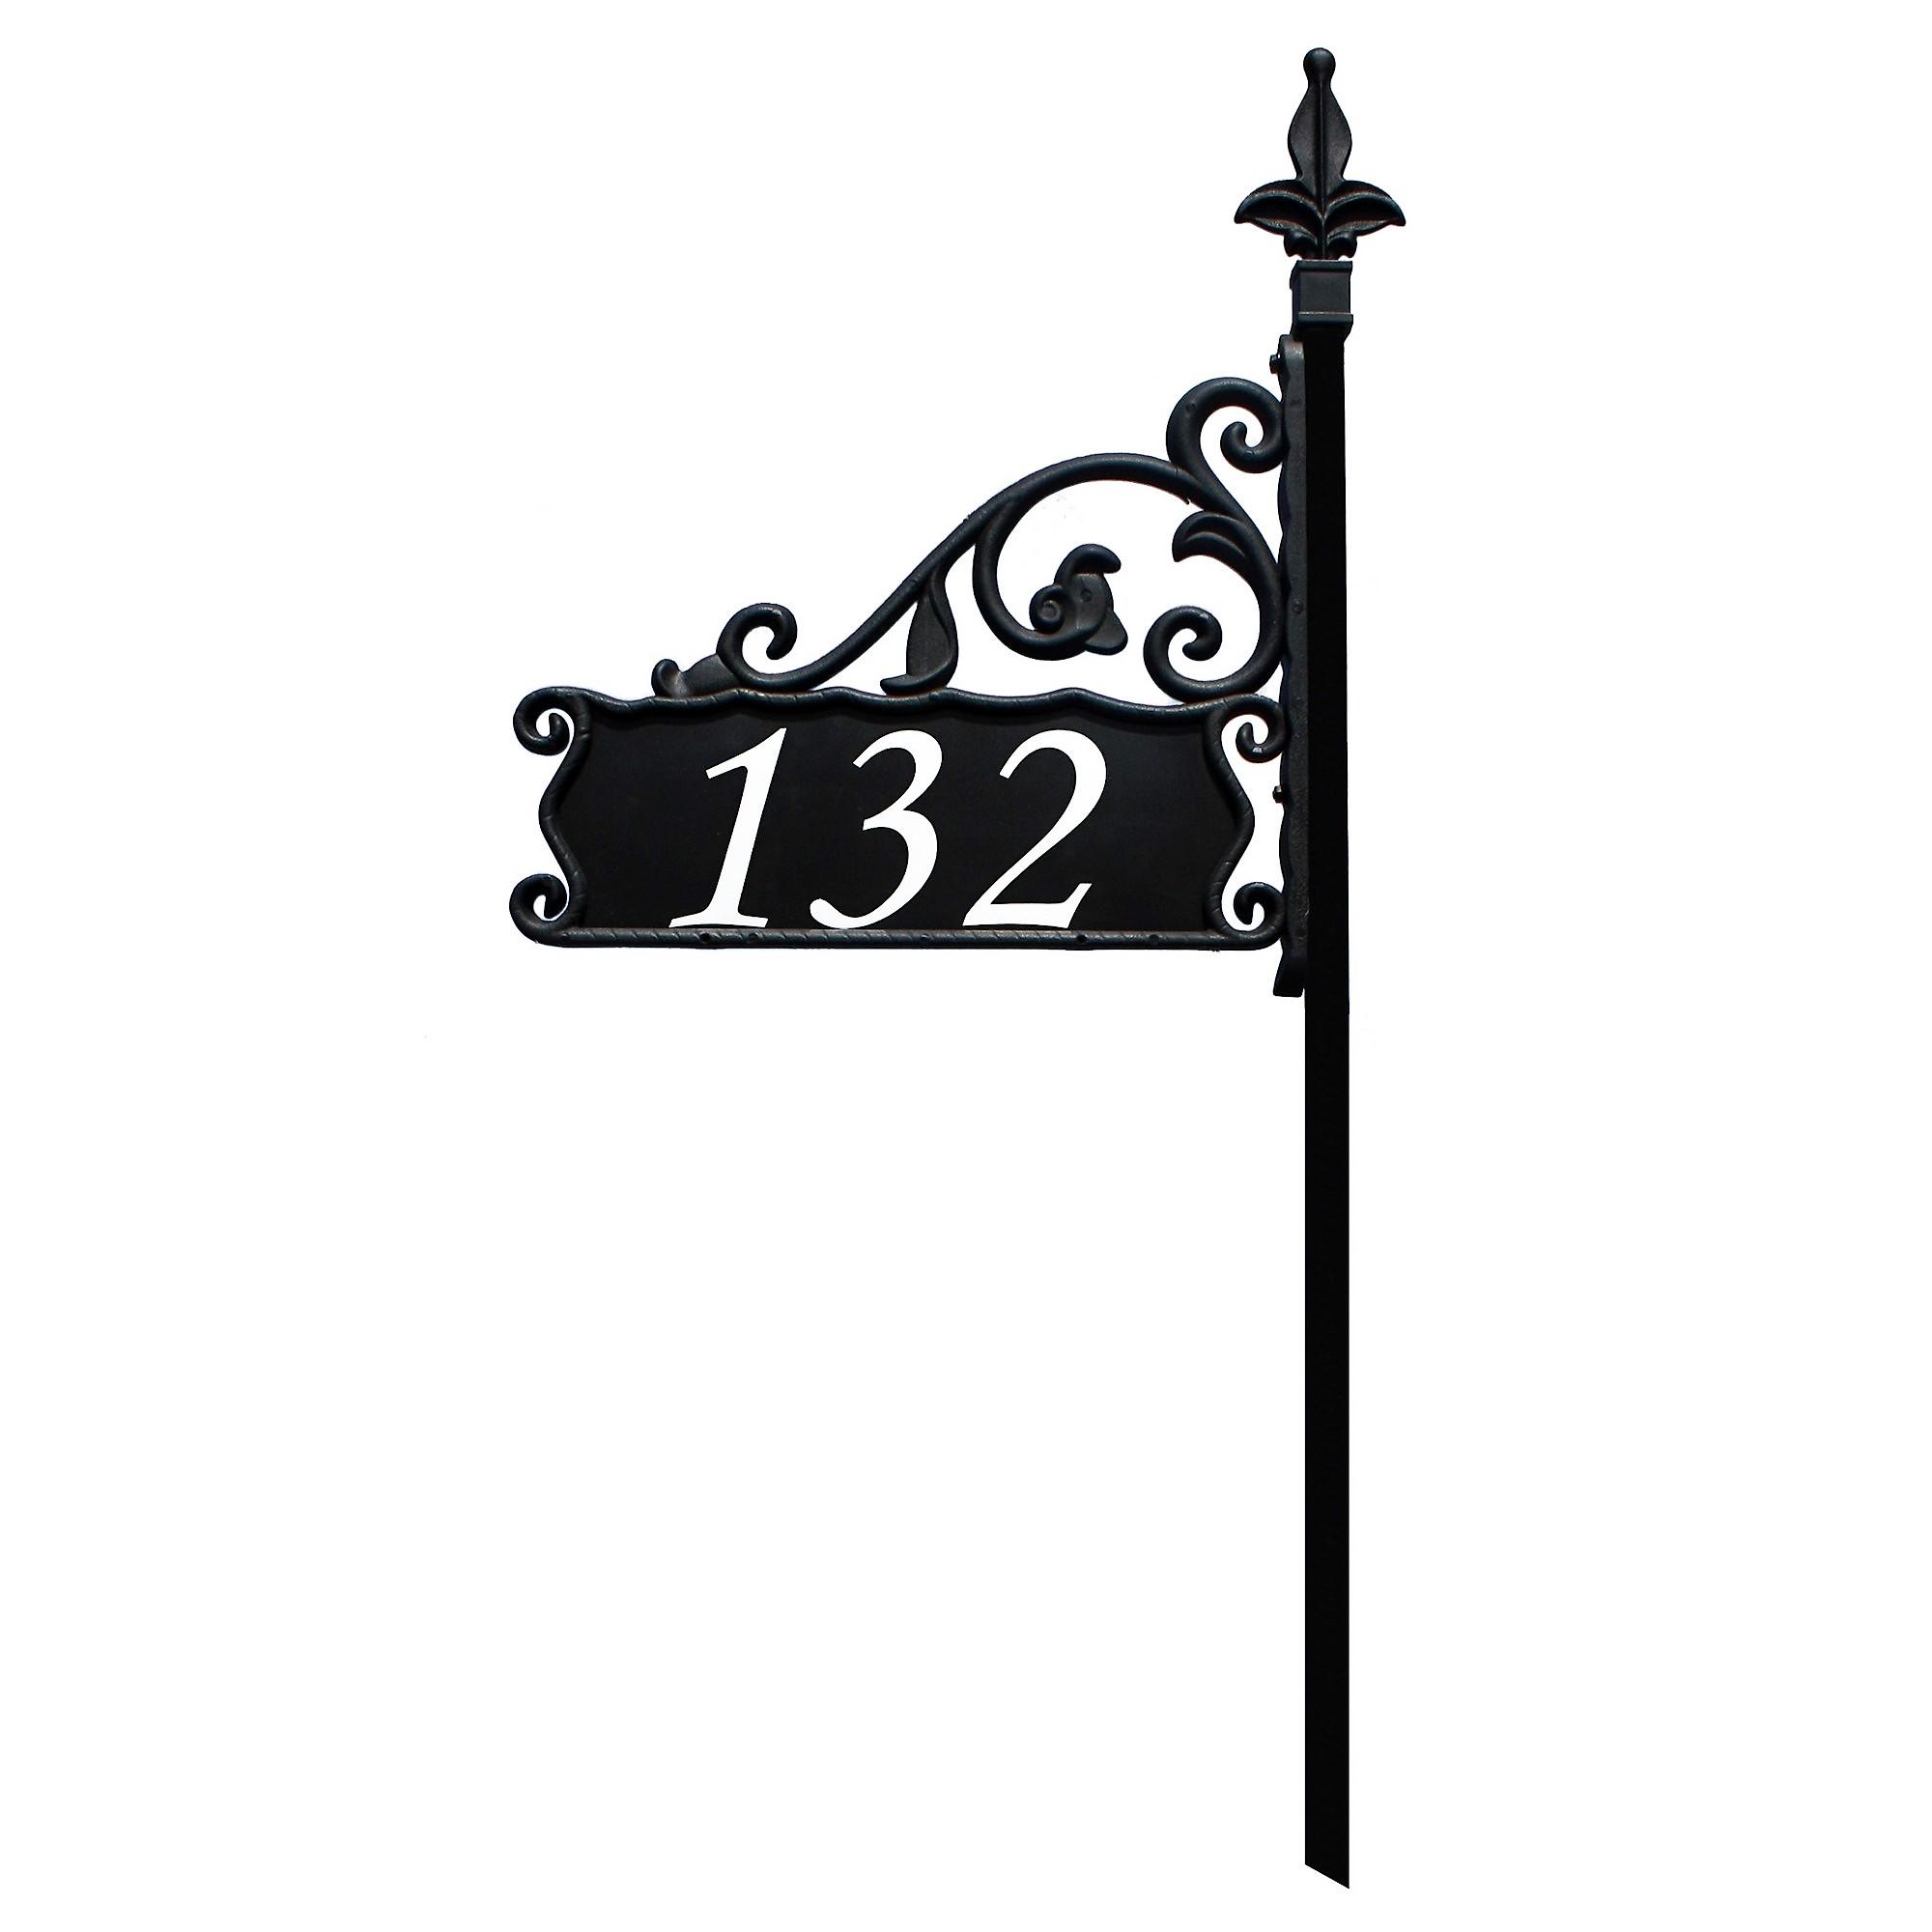 "Boardwalk Reflective 911 Home Address Sign for Yard - Custom Made Address Plaque - Wrought Iron Look Exclusively By Address America (30"" Pole - Elegant Font)"